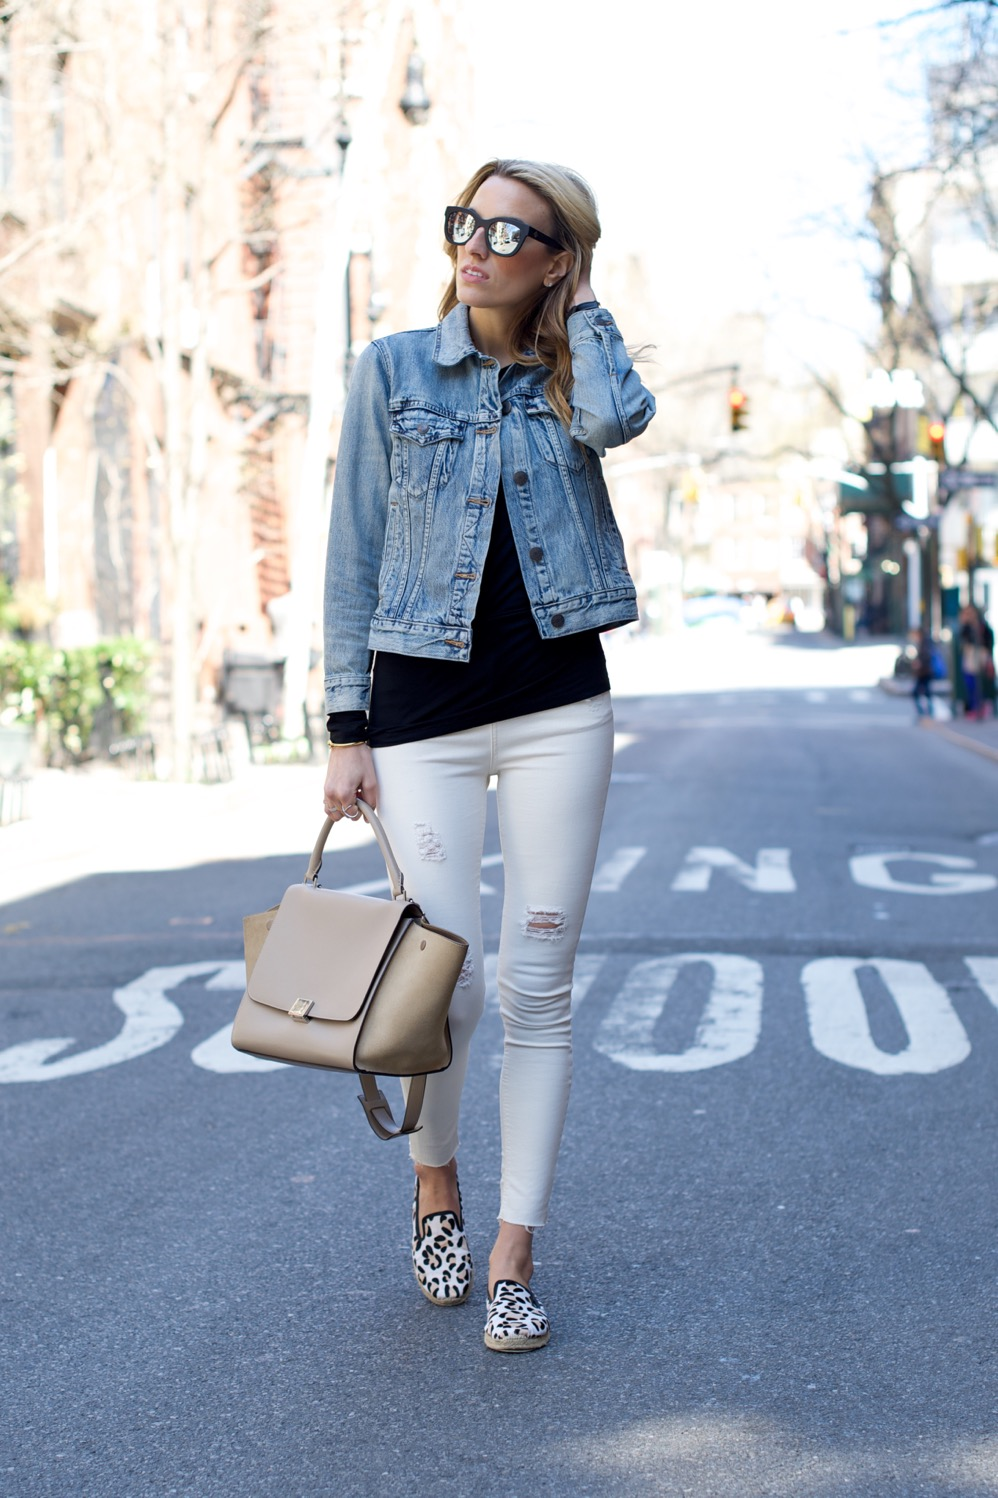 Topshop jeans, J Crew denim jacket - 2 of 13